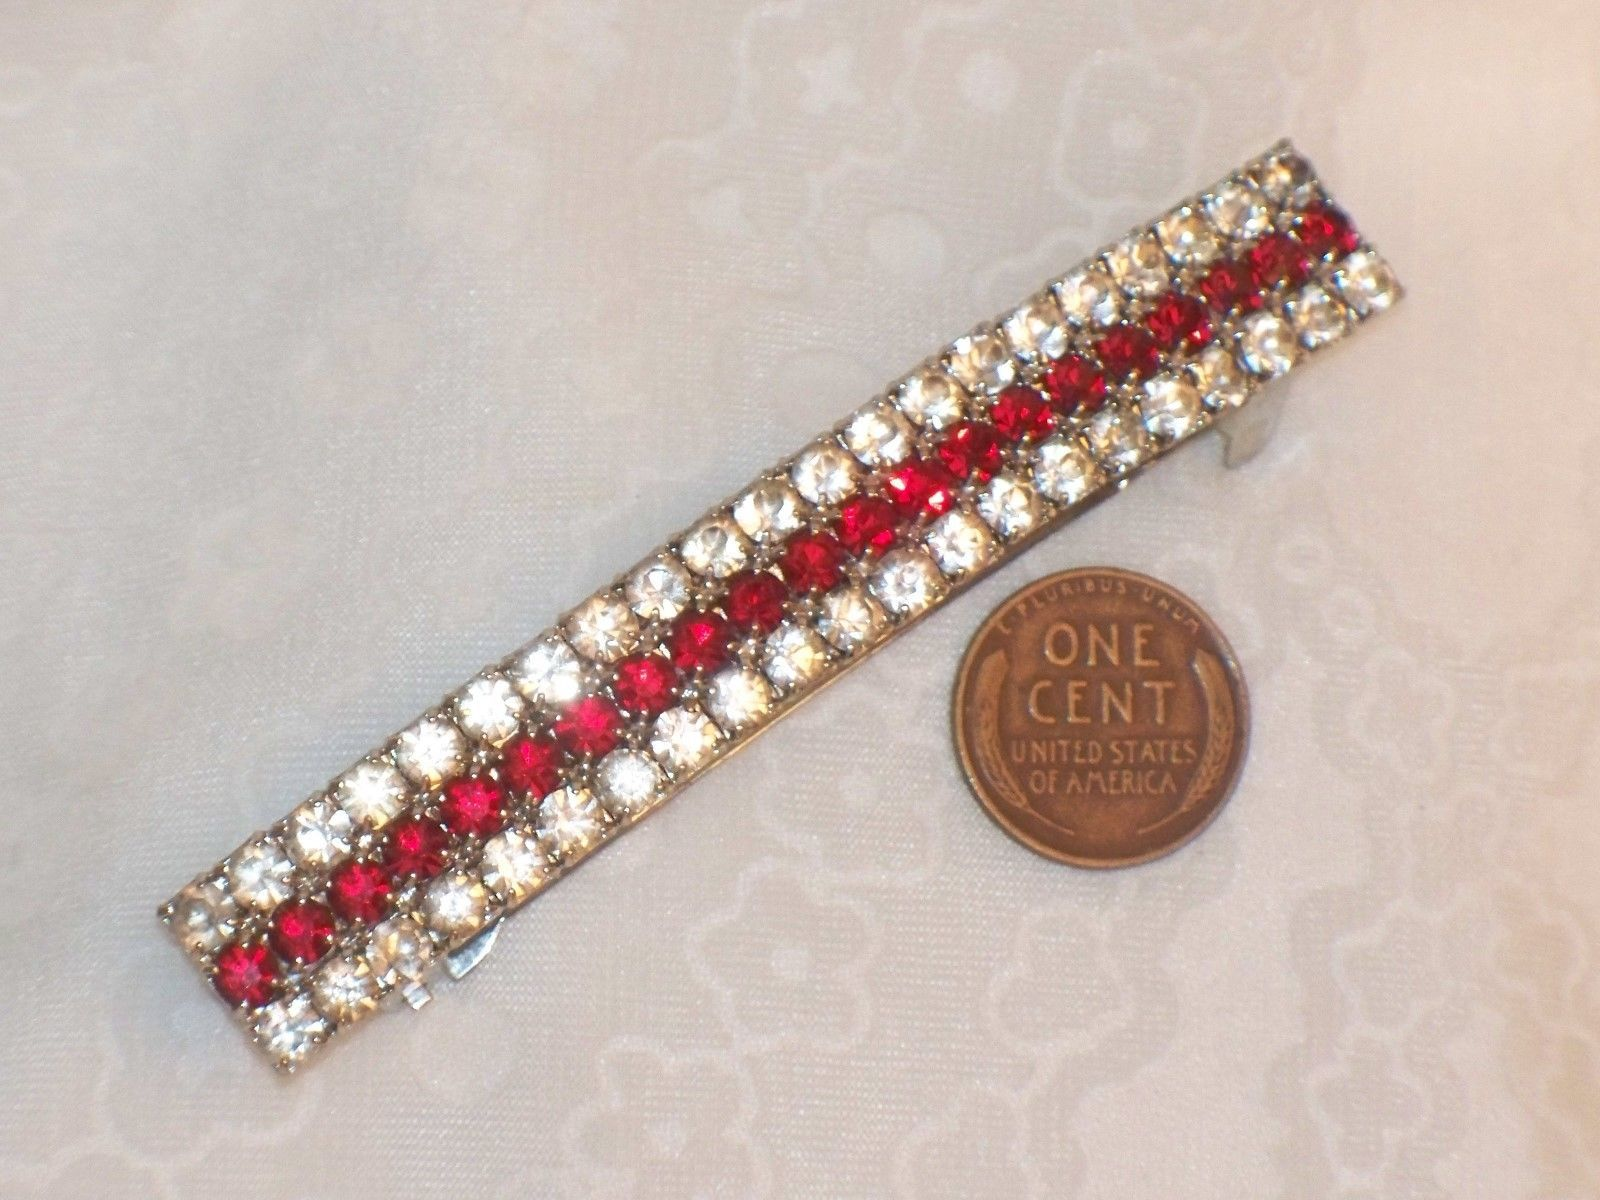 Vintage hair accessory holder - Vintage 1980s Large Red Rhinestone Barrette France Thick Hair Pony Tail Holder